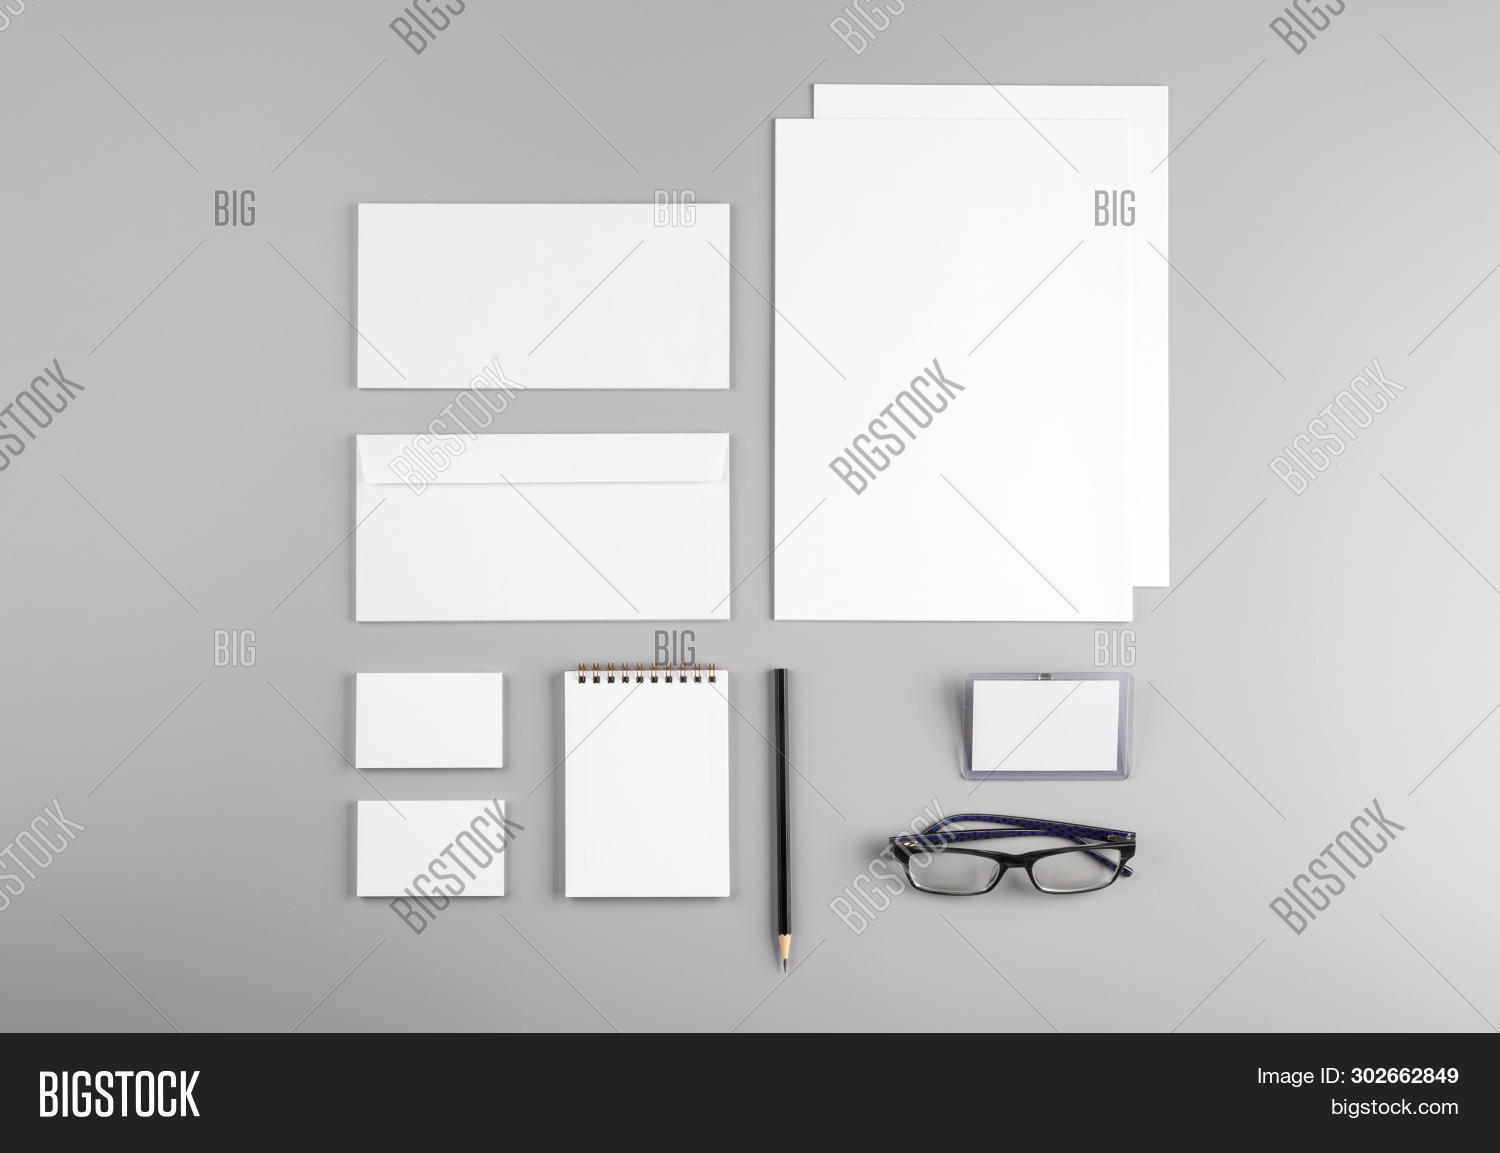 Blank,Communication,Corporate,Document,Group,Paper,Style,background,black,brand,branding,business,card,copy,design,empty,envelope,fake,glasses,gray,guideline,id,identity,isolated,letterhead,mask,mock,mock-up,mockup,nobody,object,of,order,pencil,pile,portfolio,print,set,sheet,space,stack,stationary,stationery,template,texture,up,white